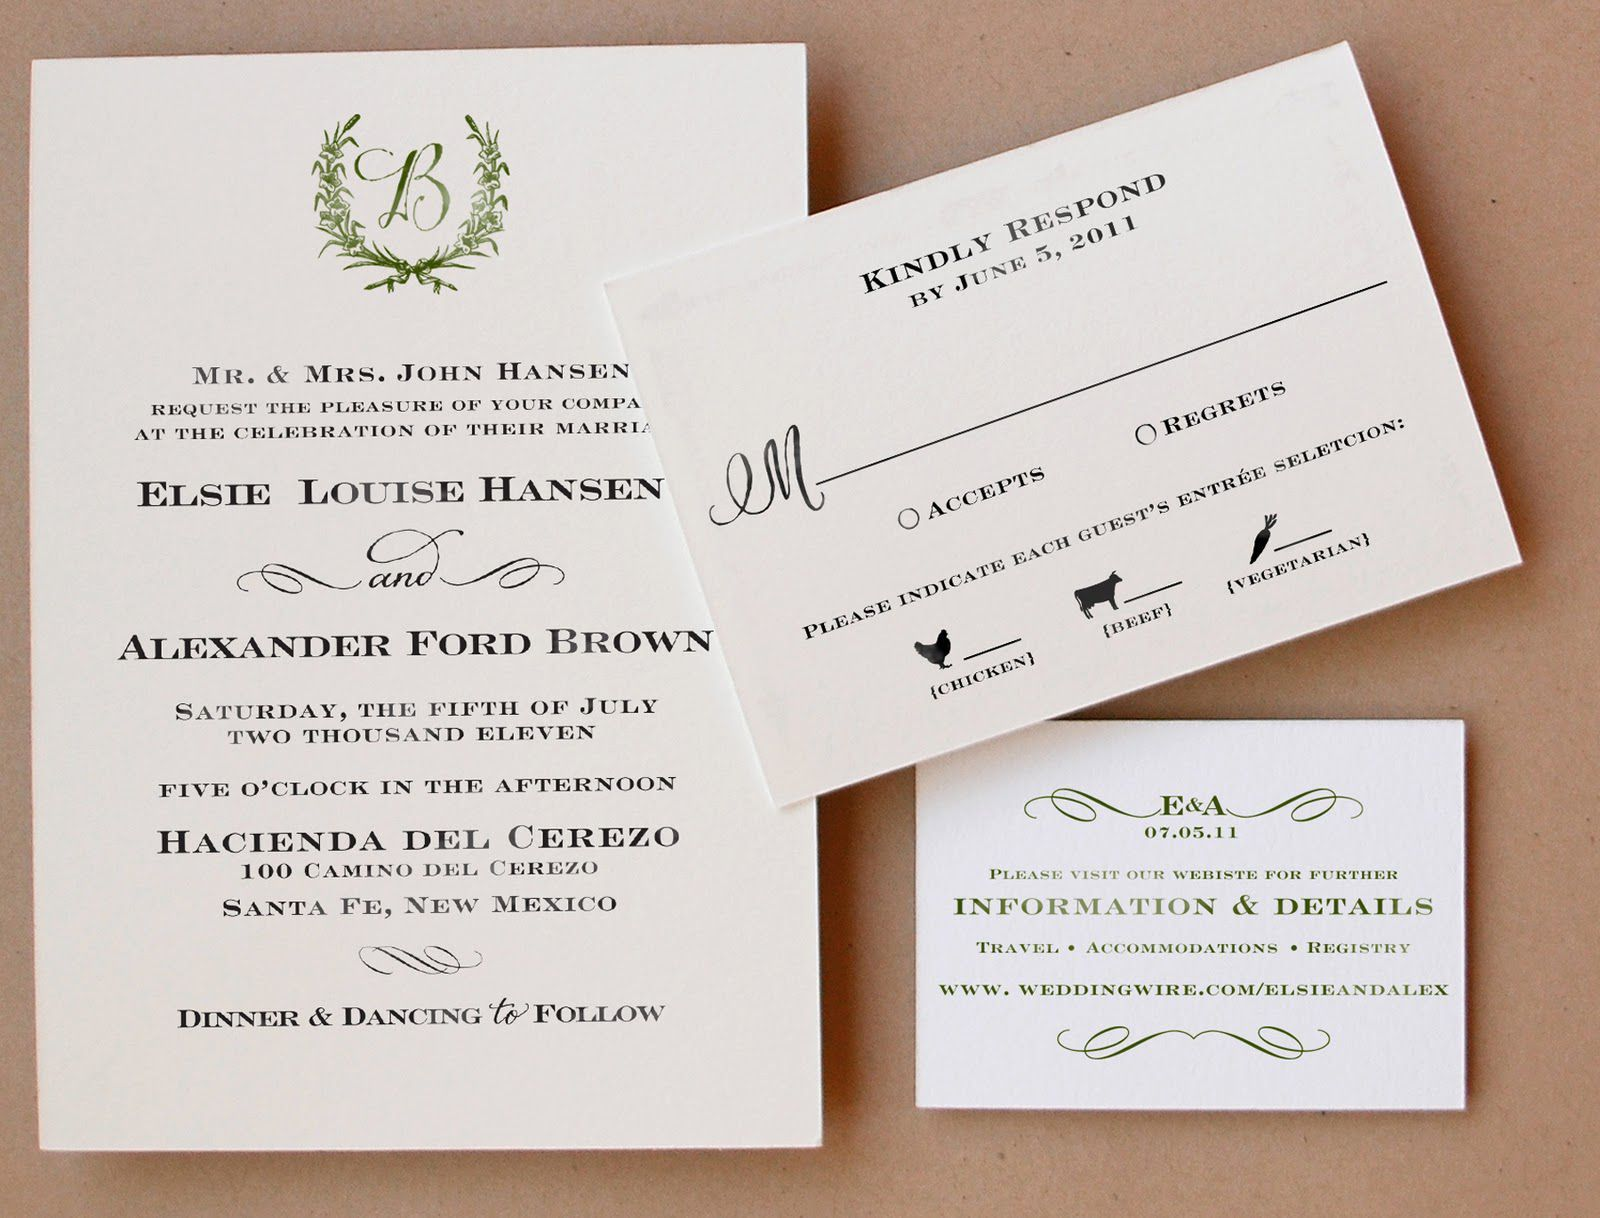 Wedding rsvp cards with dietary requirements on invitations presta wedding rsvp cards with dietary requirements on invitations stopboris Choice Image